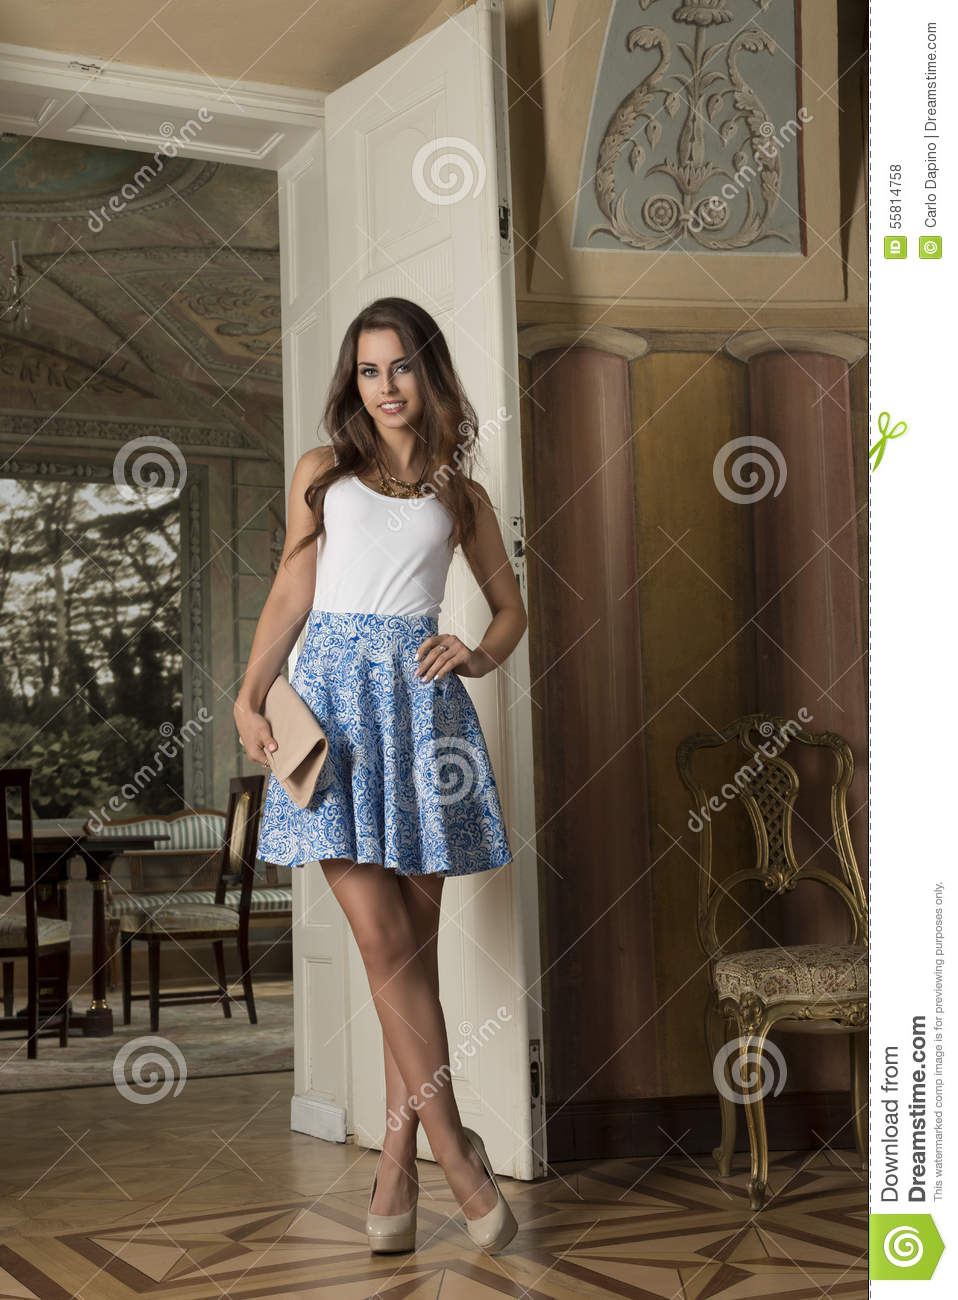 Old Classic Cars >> Fashion Girl In Antique Palace Stock Photo - Image: 55814758